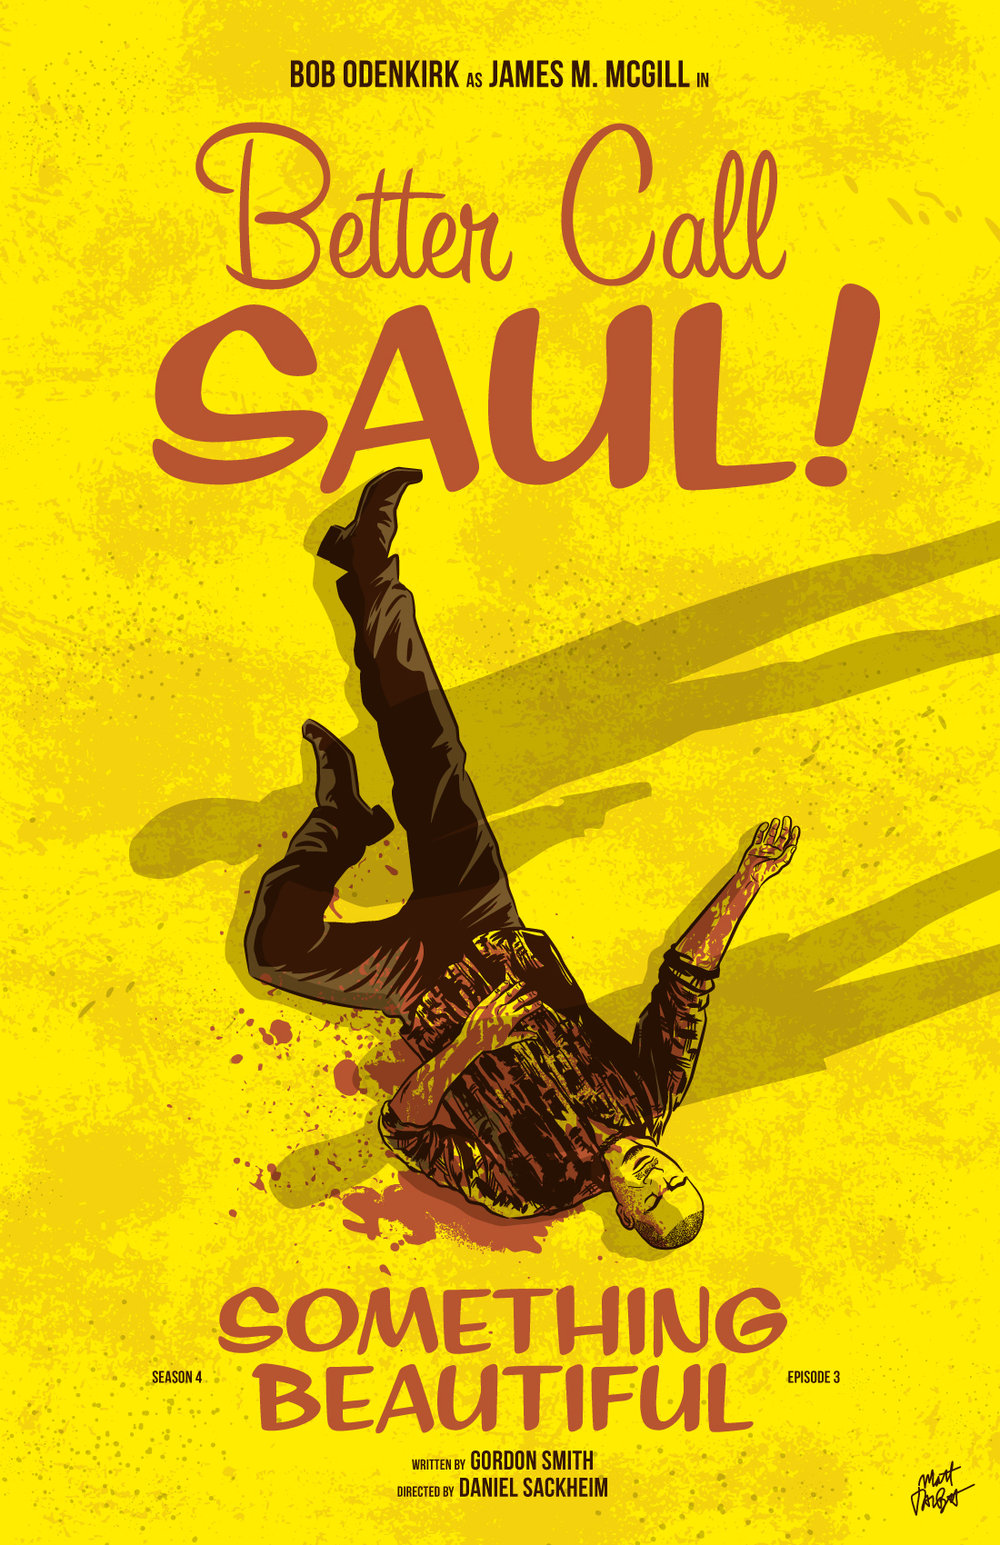 Better Call Saul Season 4 Episode 3, Something Beautiful, poster by Matt Talbot